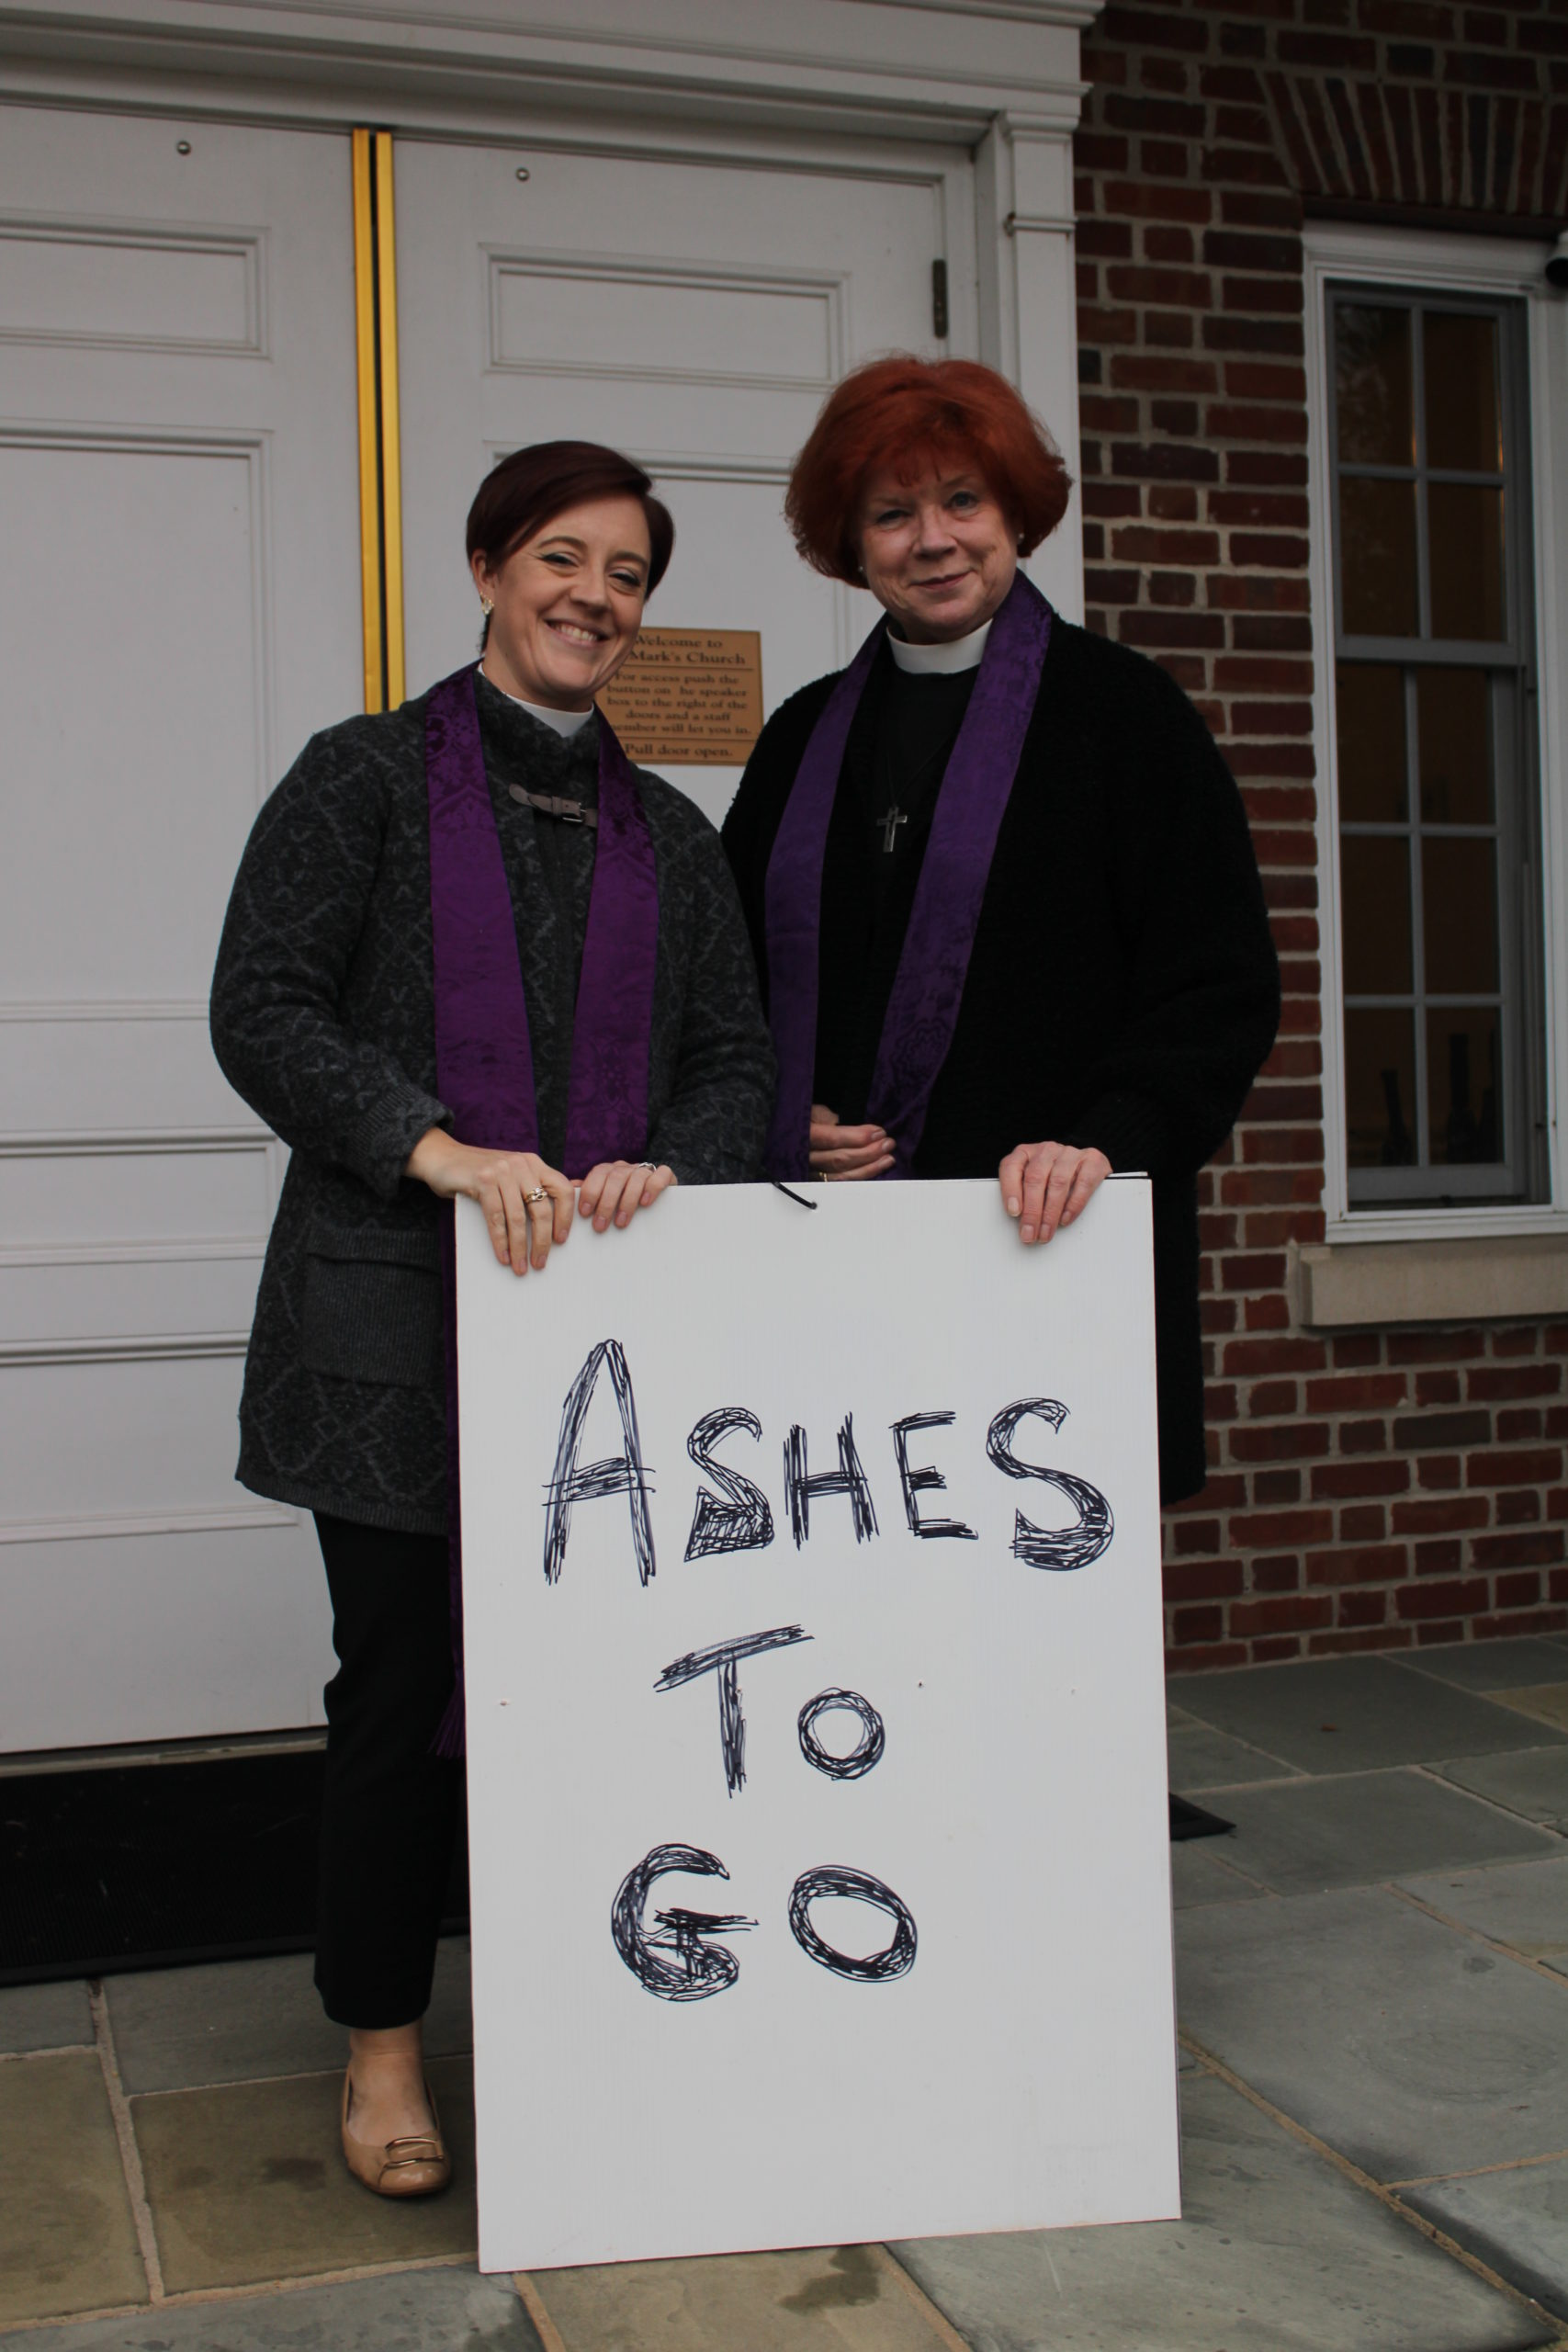 The Reverend Vanessa Winters of the Westhampton Presbyterian Church and The Reverend Canon Lesley Hay of St. Mark's Church in Westhampton Beach.